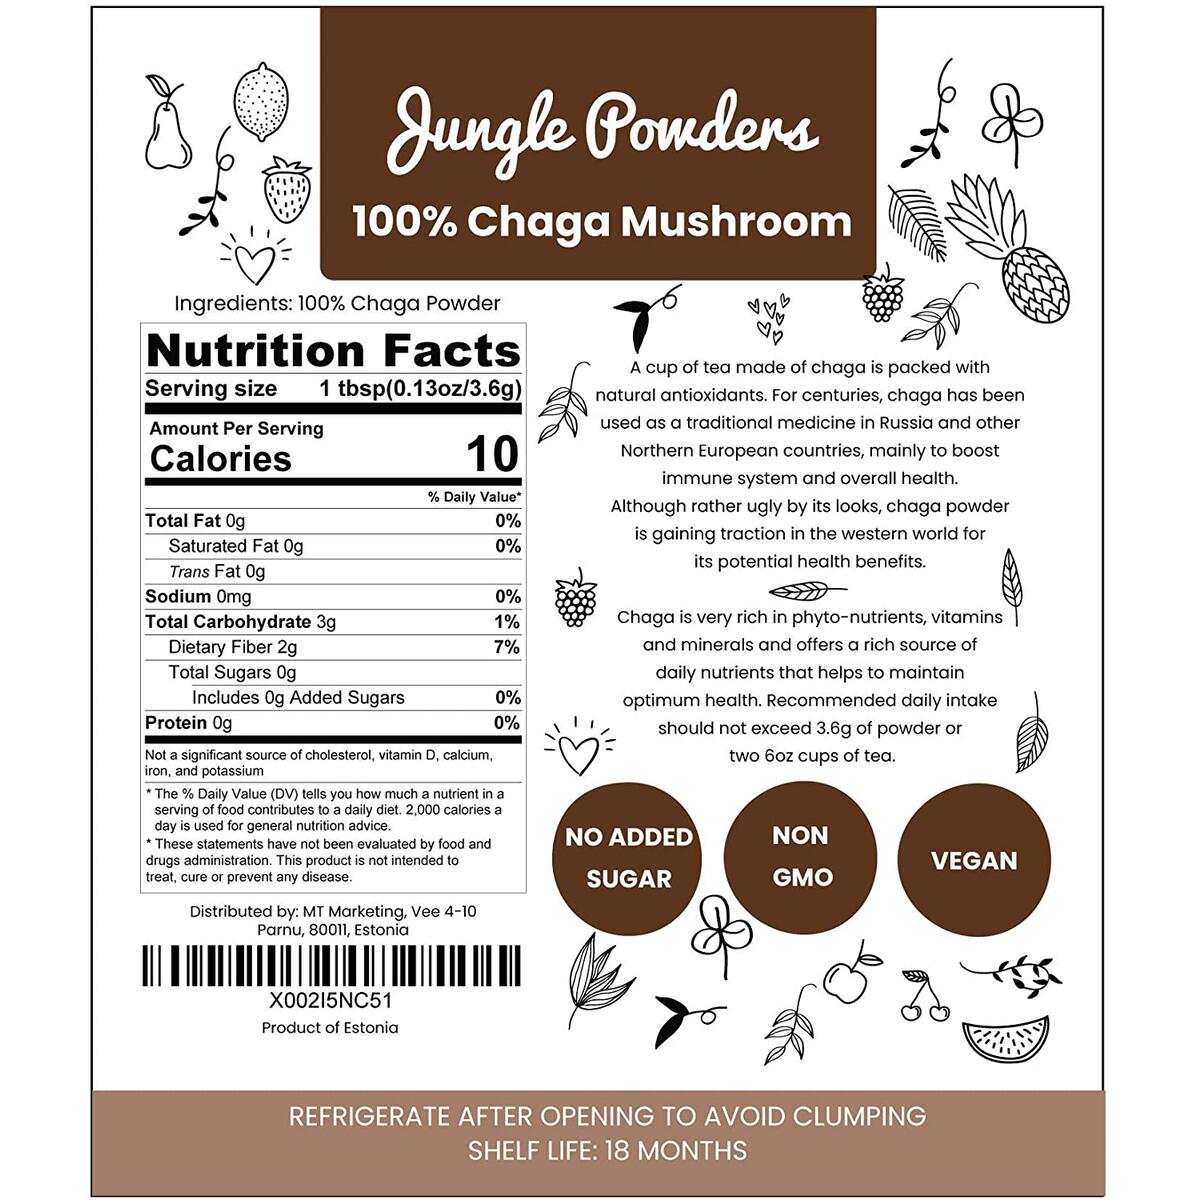 Jungle Powders Chaga Mushroom Powder 6oz of Pure Nordic Forest Chaga Tea Extract | Natural Wild Harvested Digesting and Immune System Booster